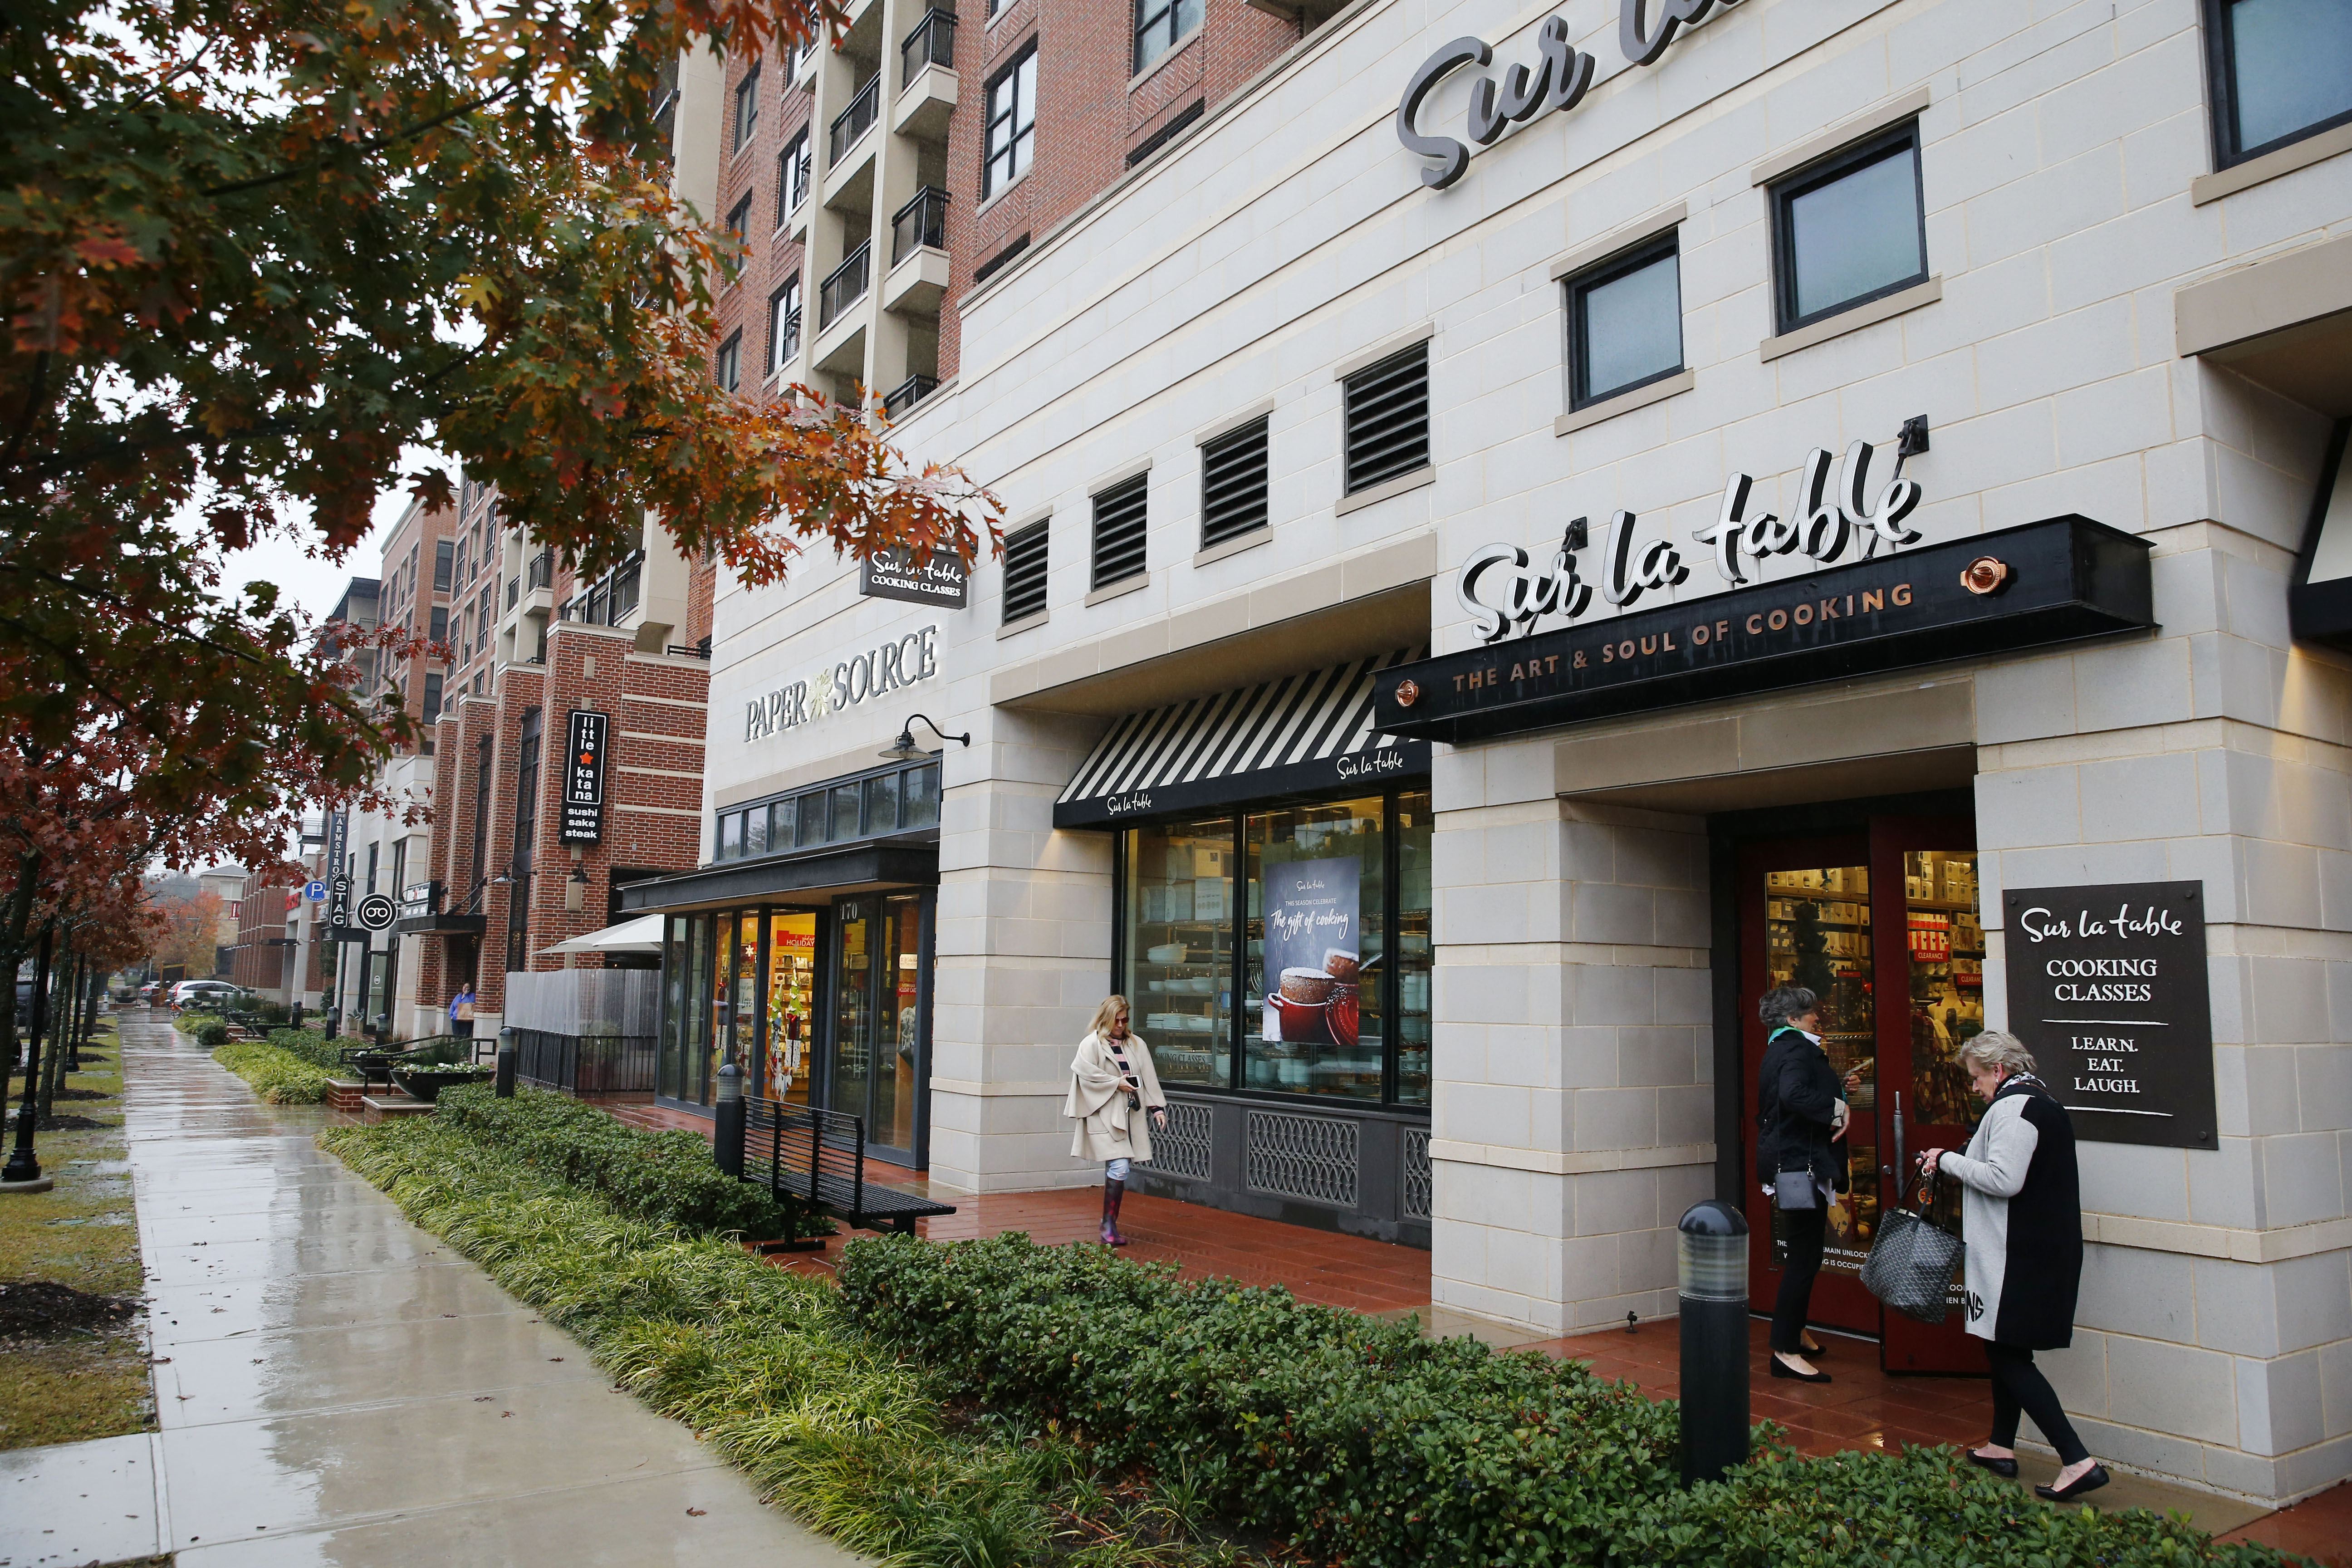 Sur La Table Retailer Of Kitchen Wares And Cooking Classes Files For Bankruptcy